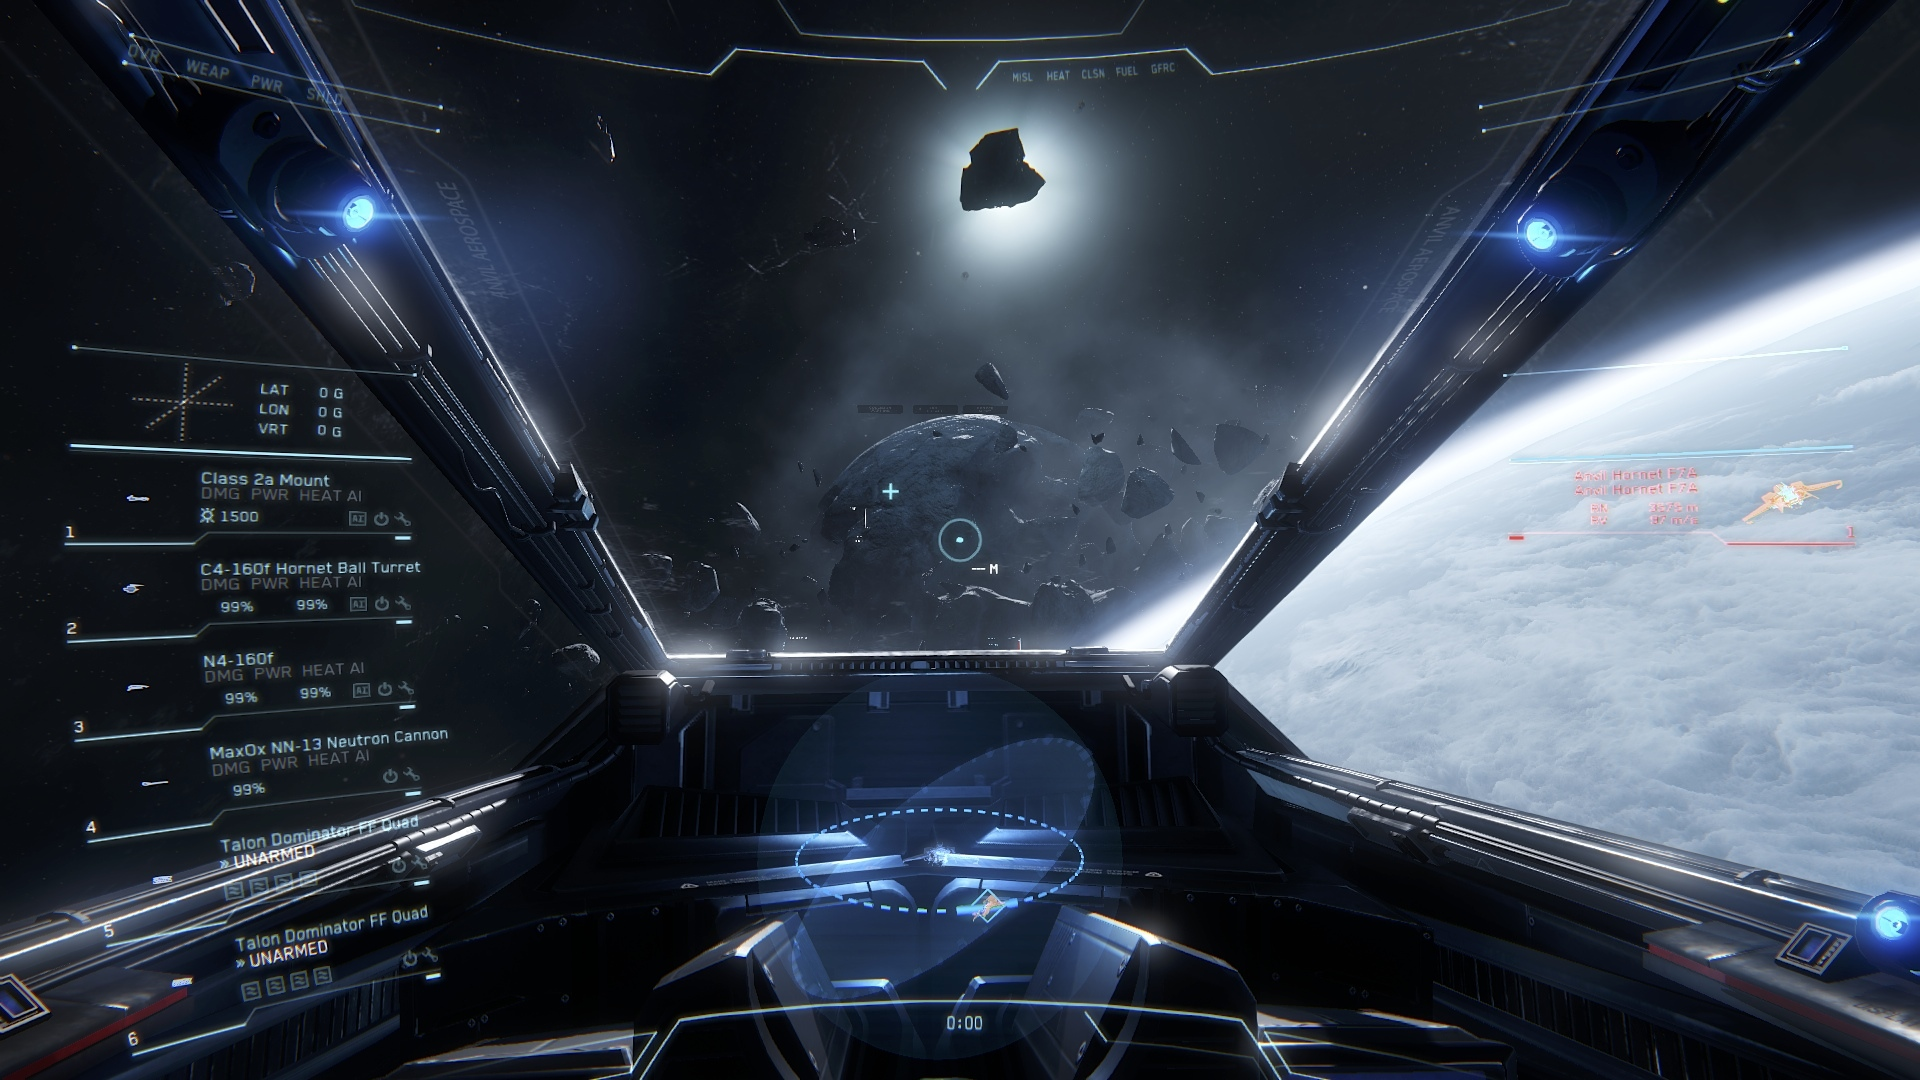 Cockpit view from one of the craft in Star Citizen's dogfight mode